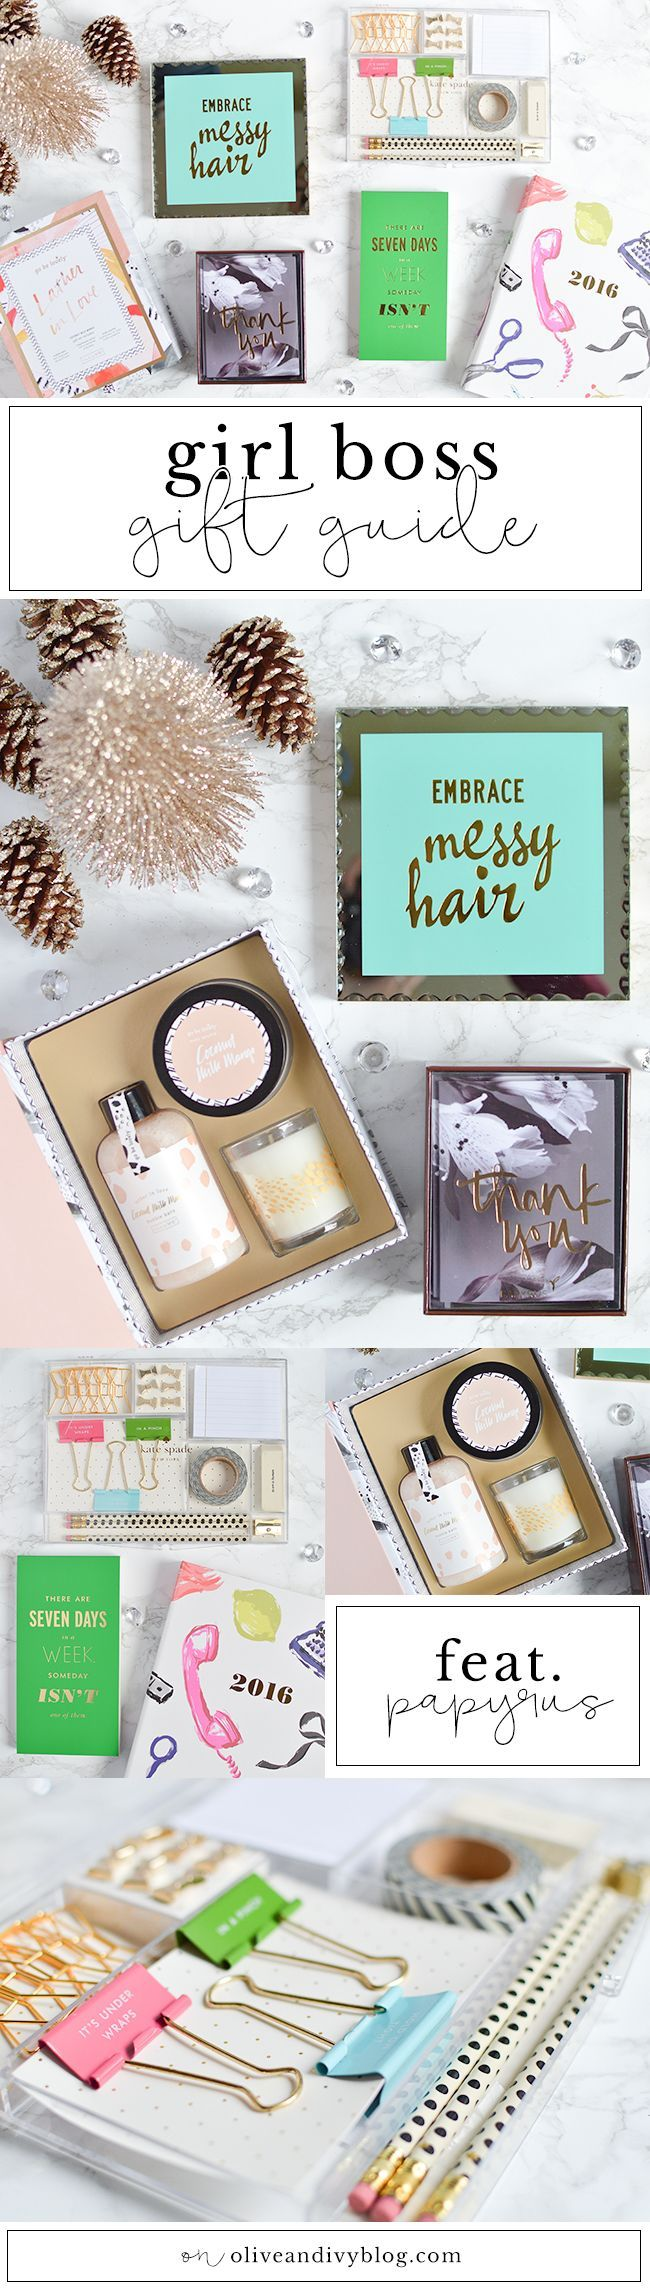 The perfect gift ideas for a fellow GIRL BOSS! | oliveandivyblog.com